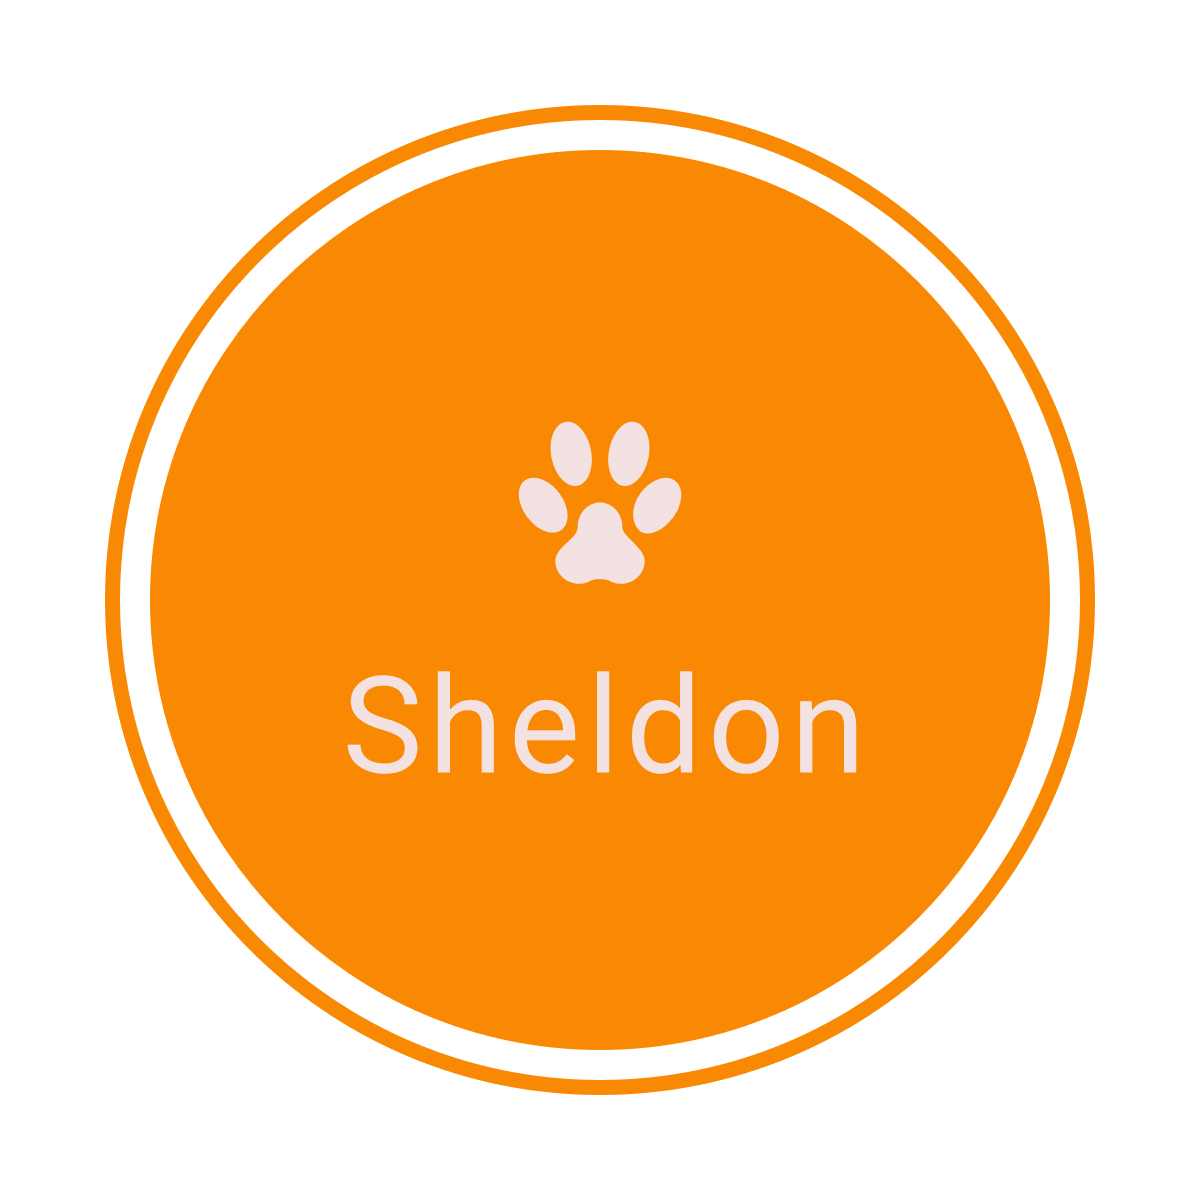 sheldon_corgi_logo_transparent